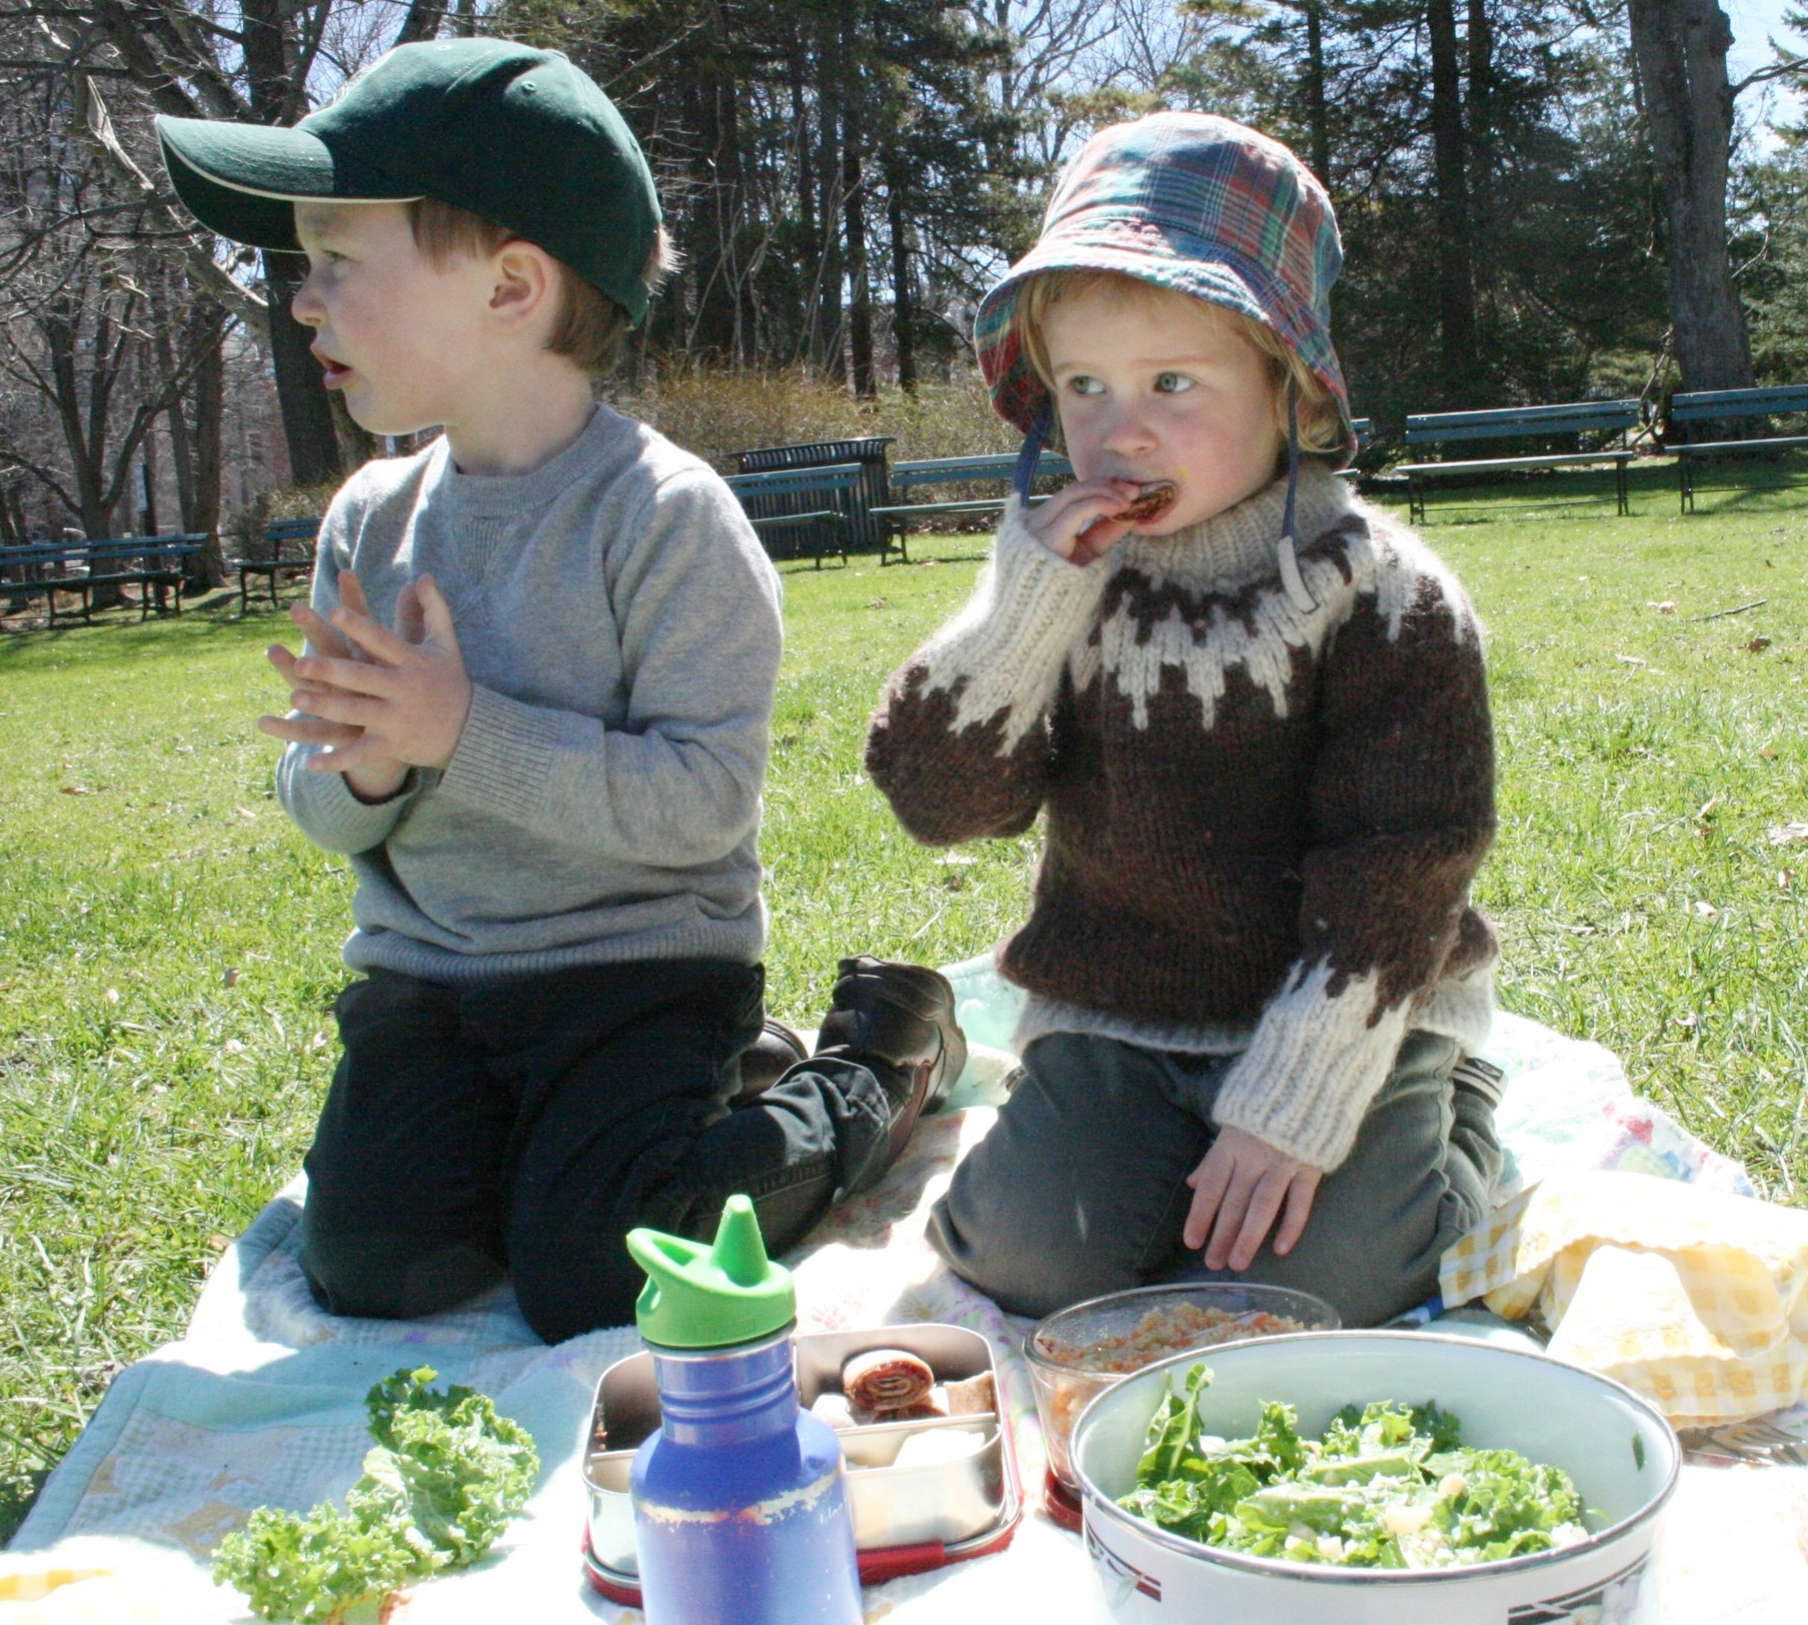 Kale salad and wraps in Halifax Public Gardens, late May. In Nova Scotia, we even picnic in wool sweaters.